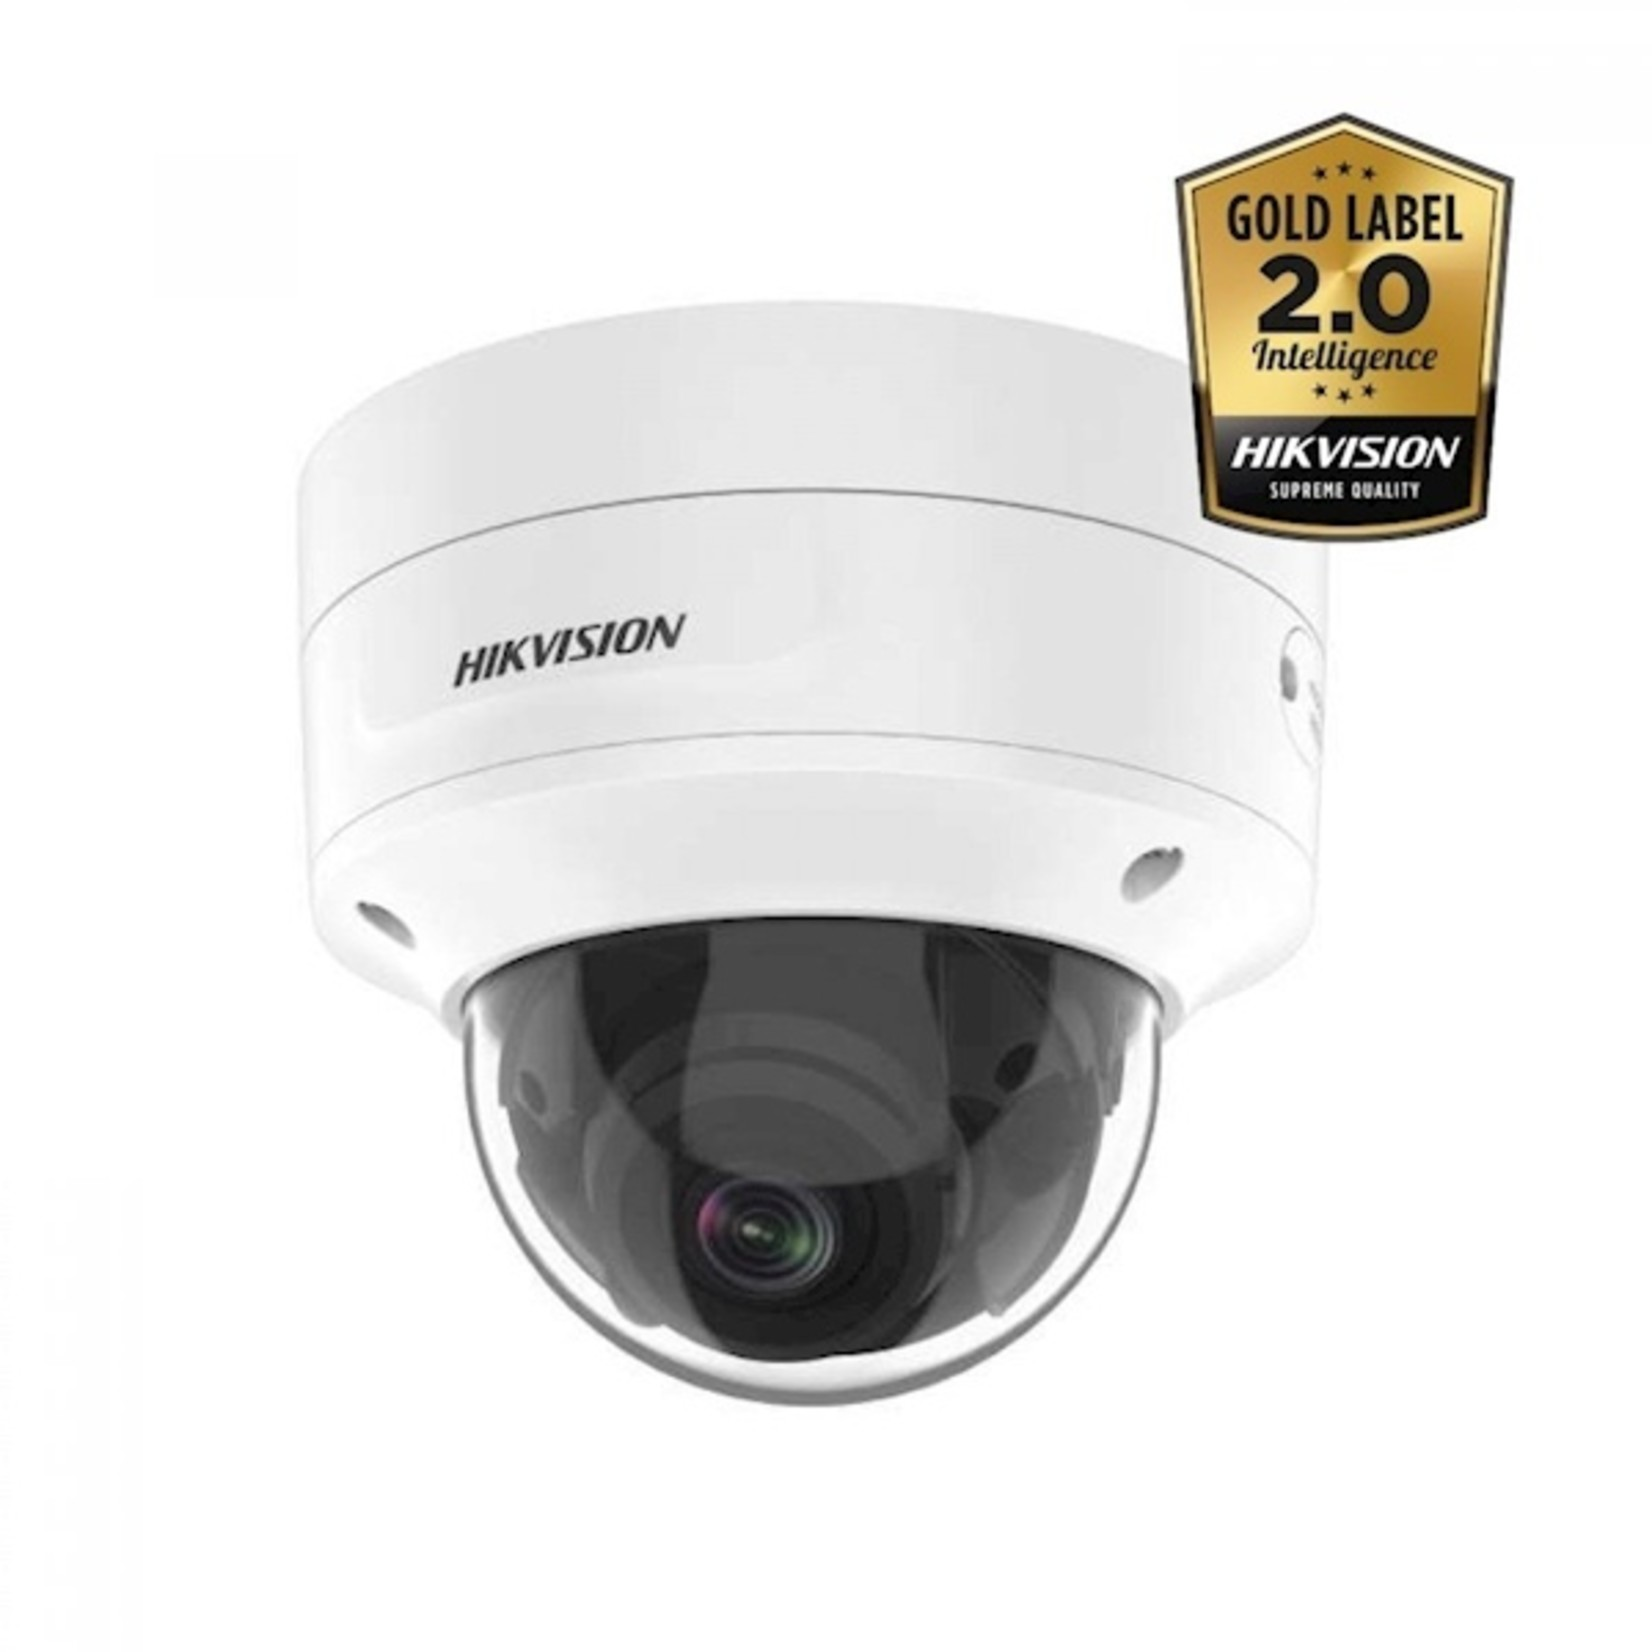 Hikvision DS-2CD2746G2-IZS, 4MP, 2.8-12MM, 40m IR, WDR